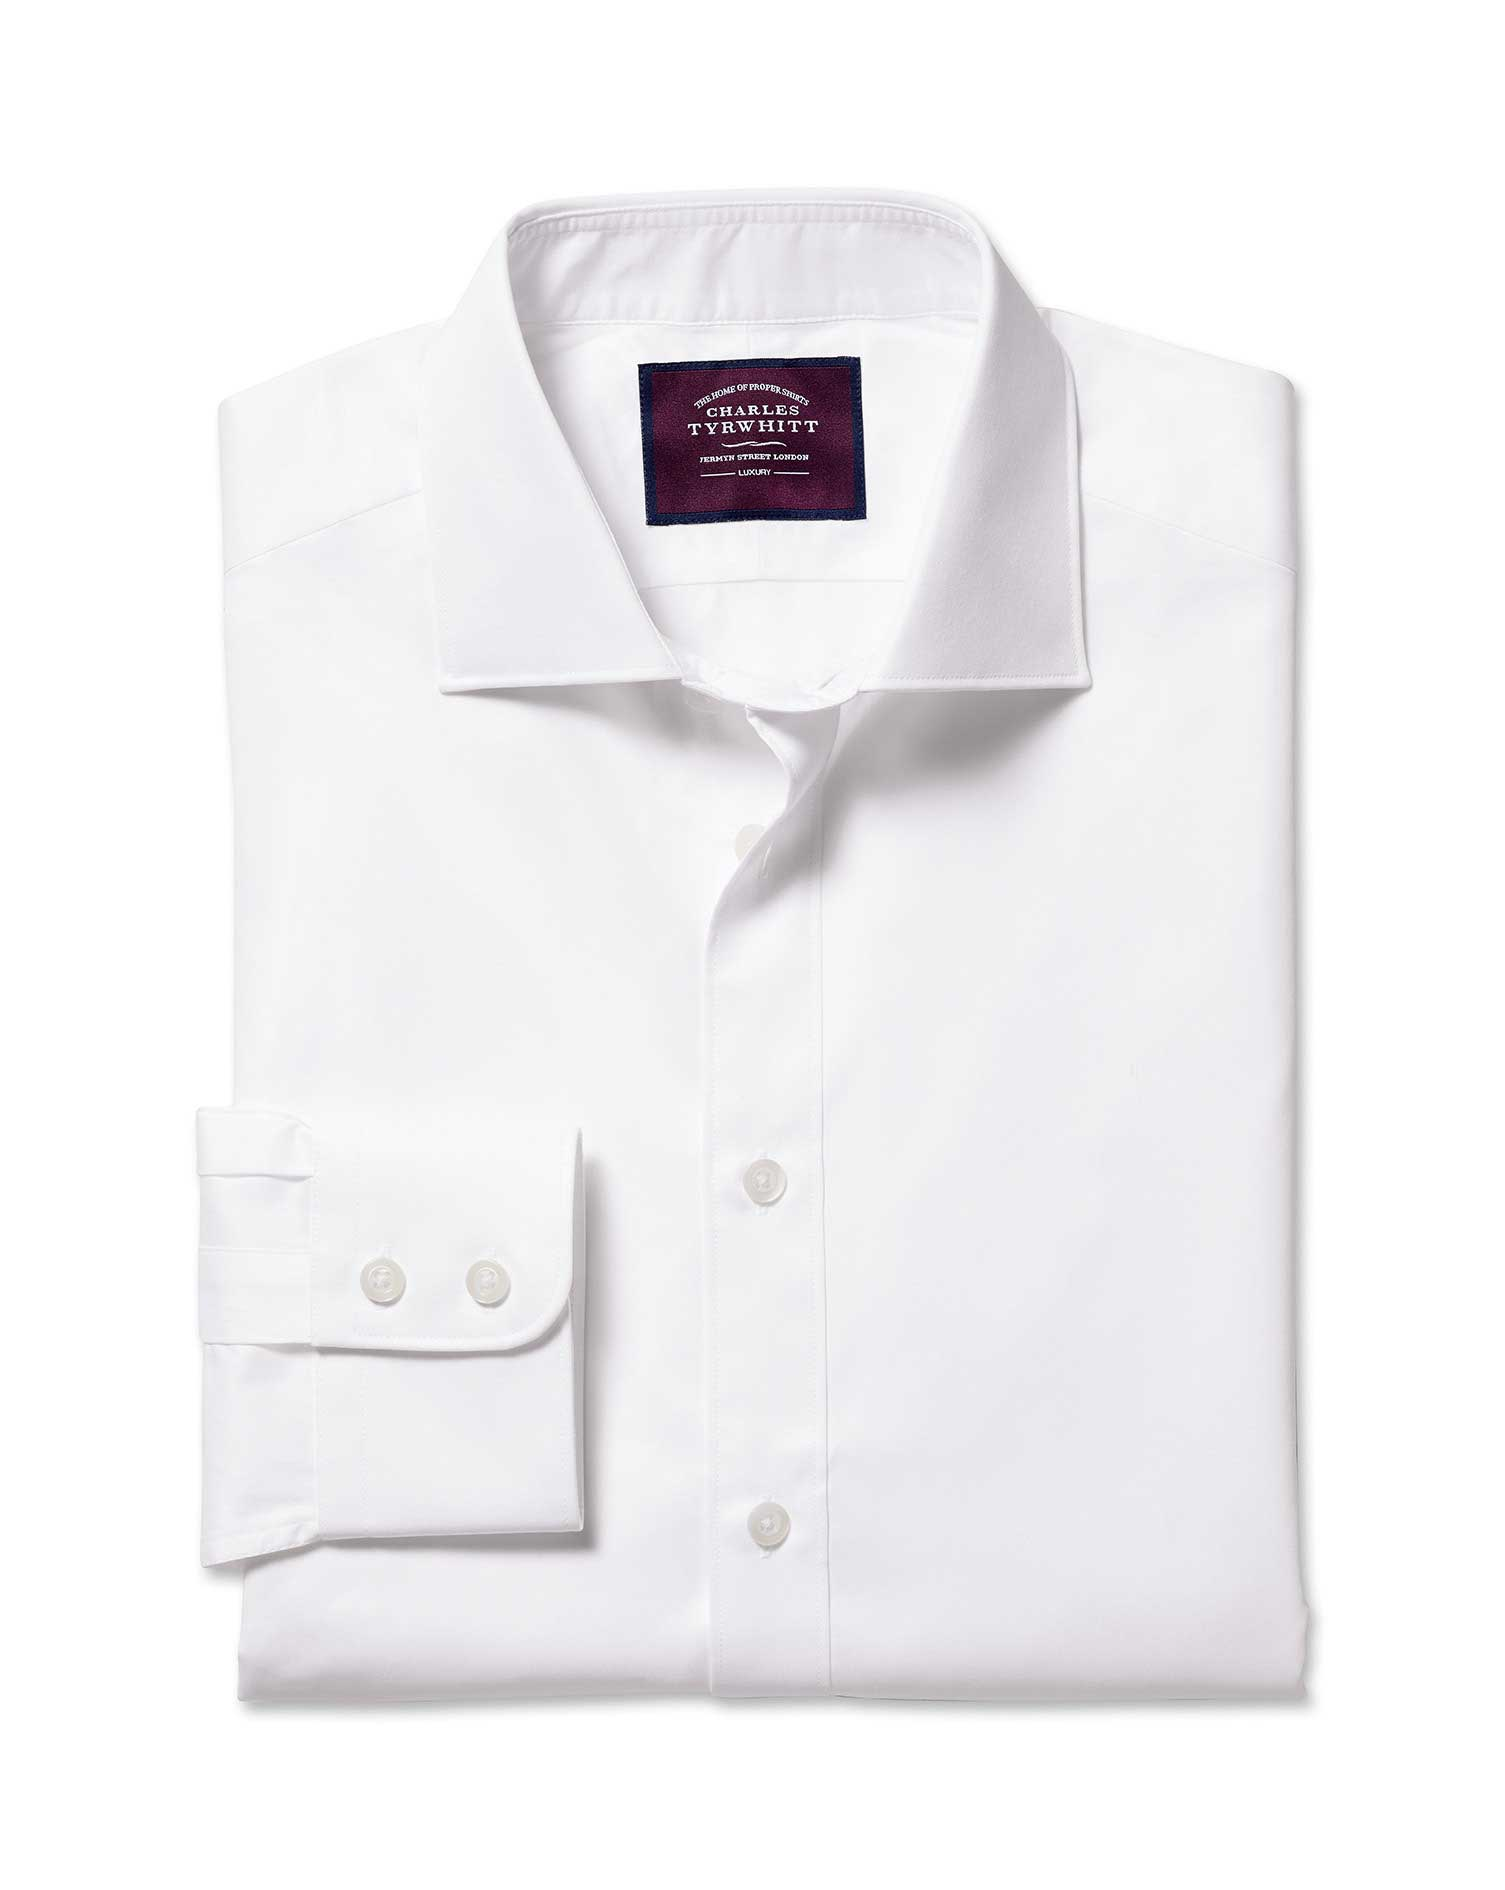 Classic Fit Semi-Cutaway Luxury Twill White Egyptian Cotton Formal Shirt Double Cuff Size 17/35 by C